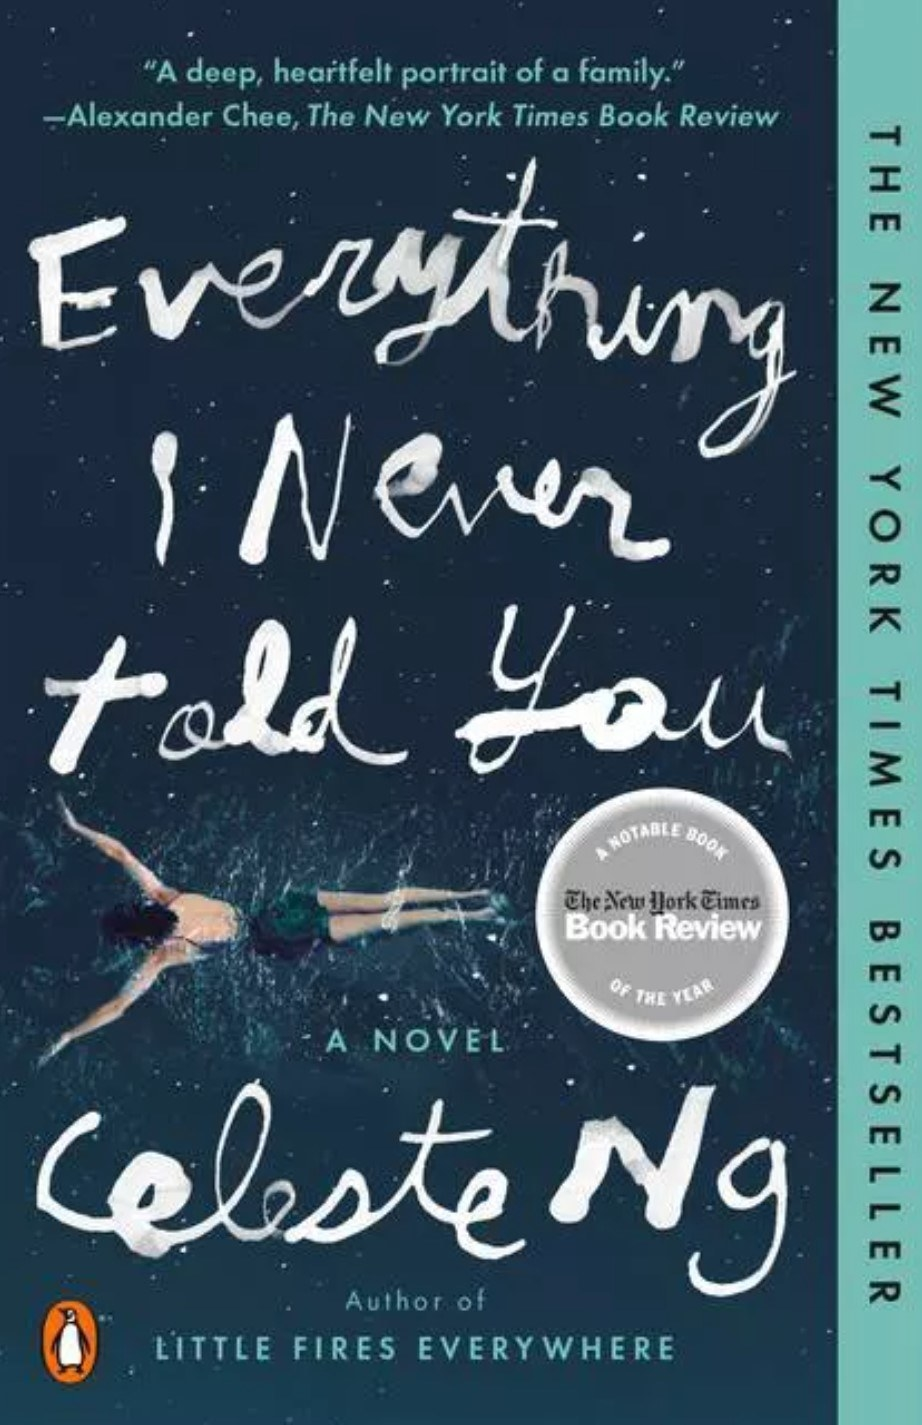 The cover of Everything I Never Told You by Celeste Ng